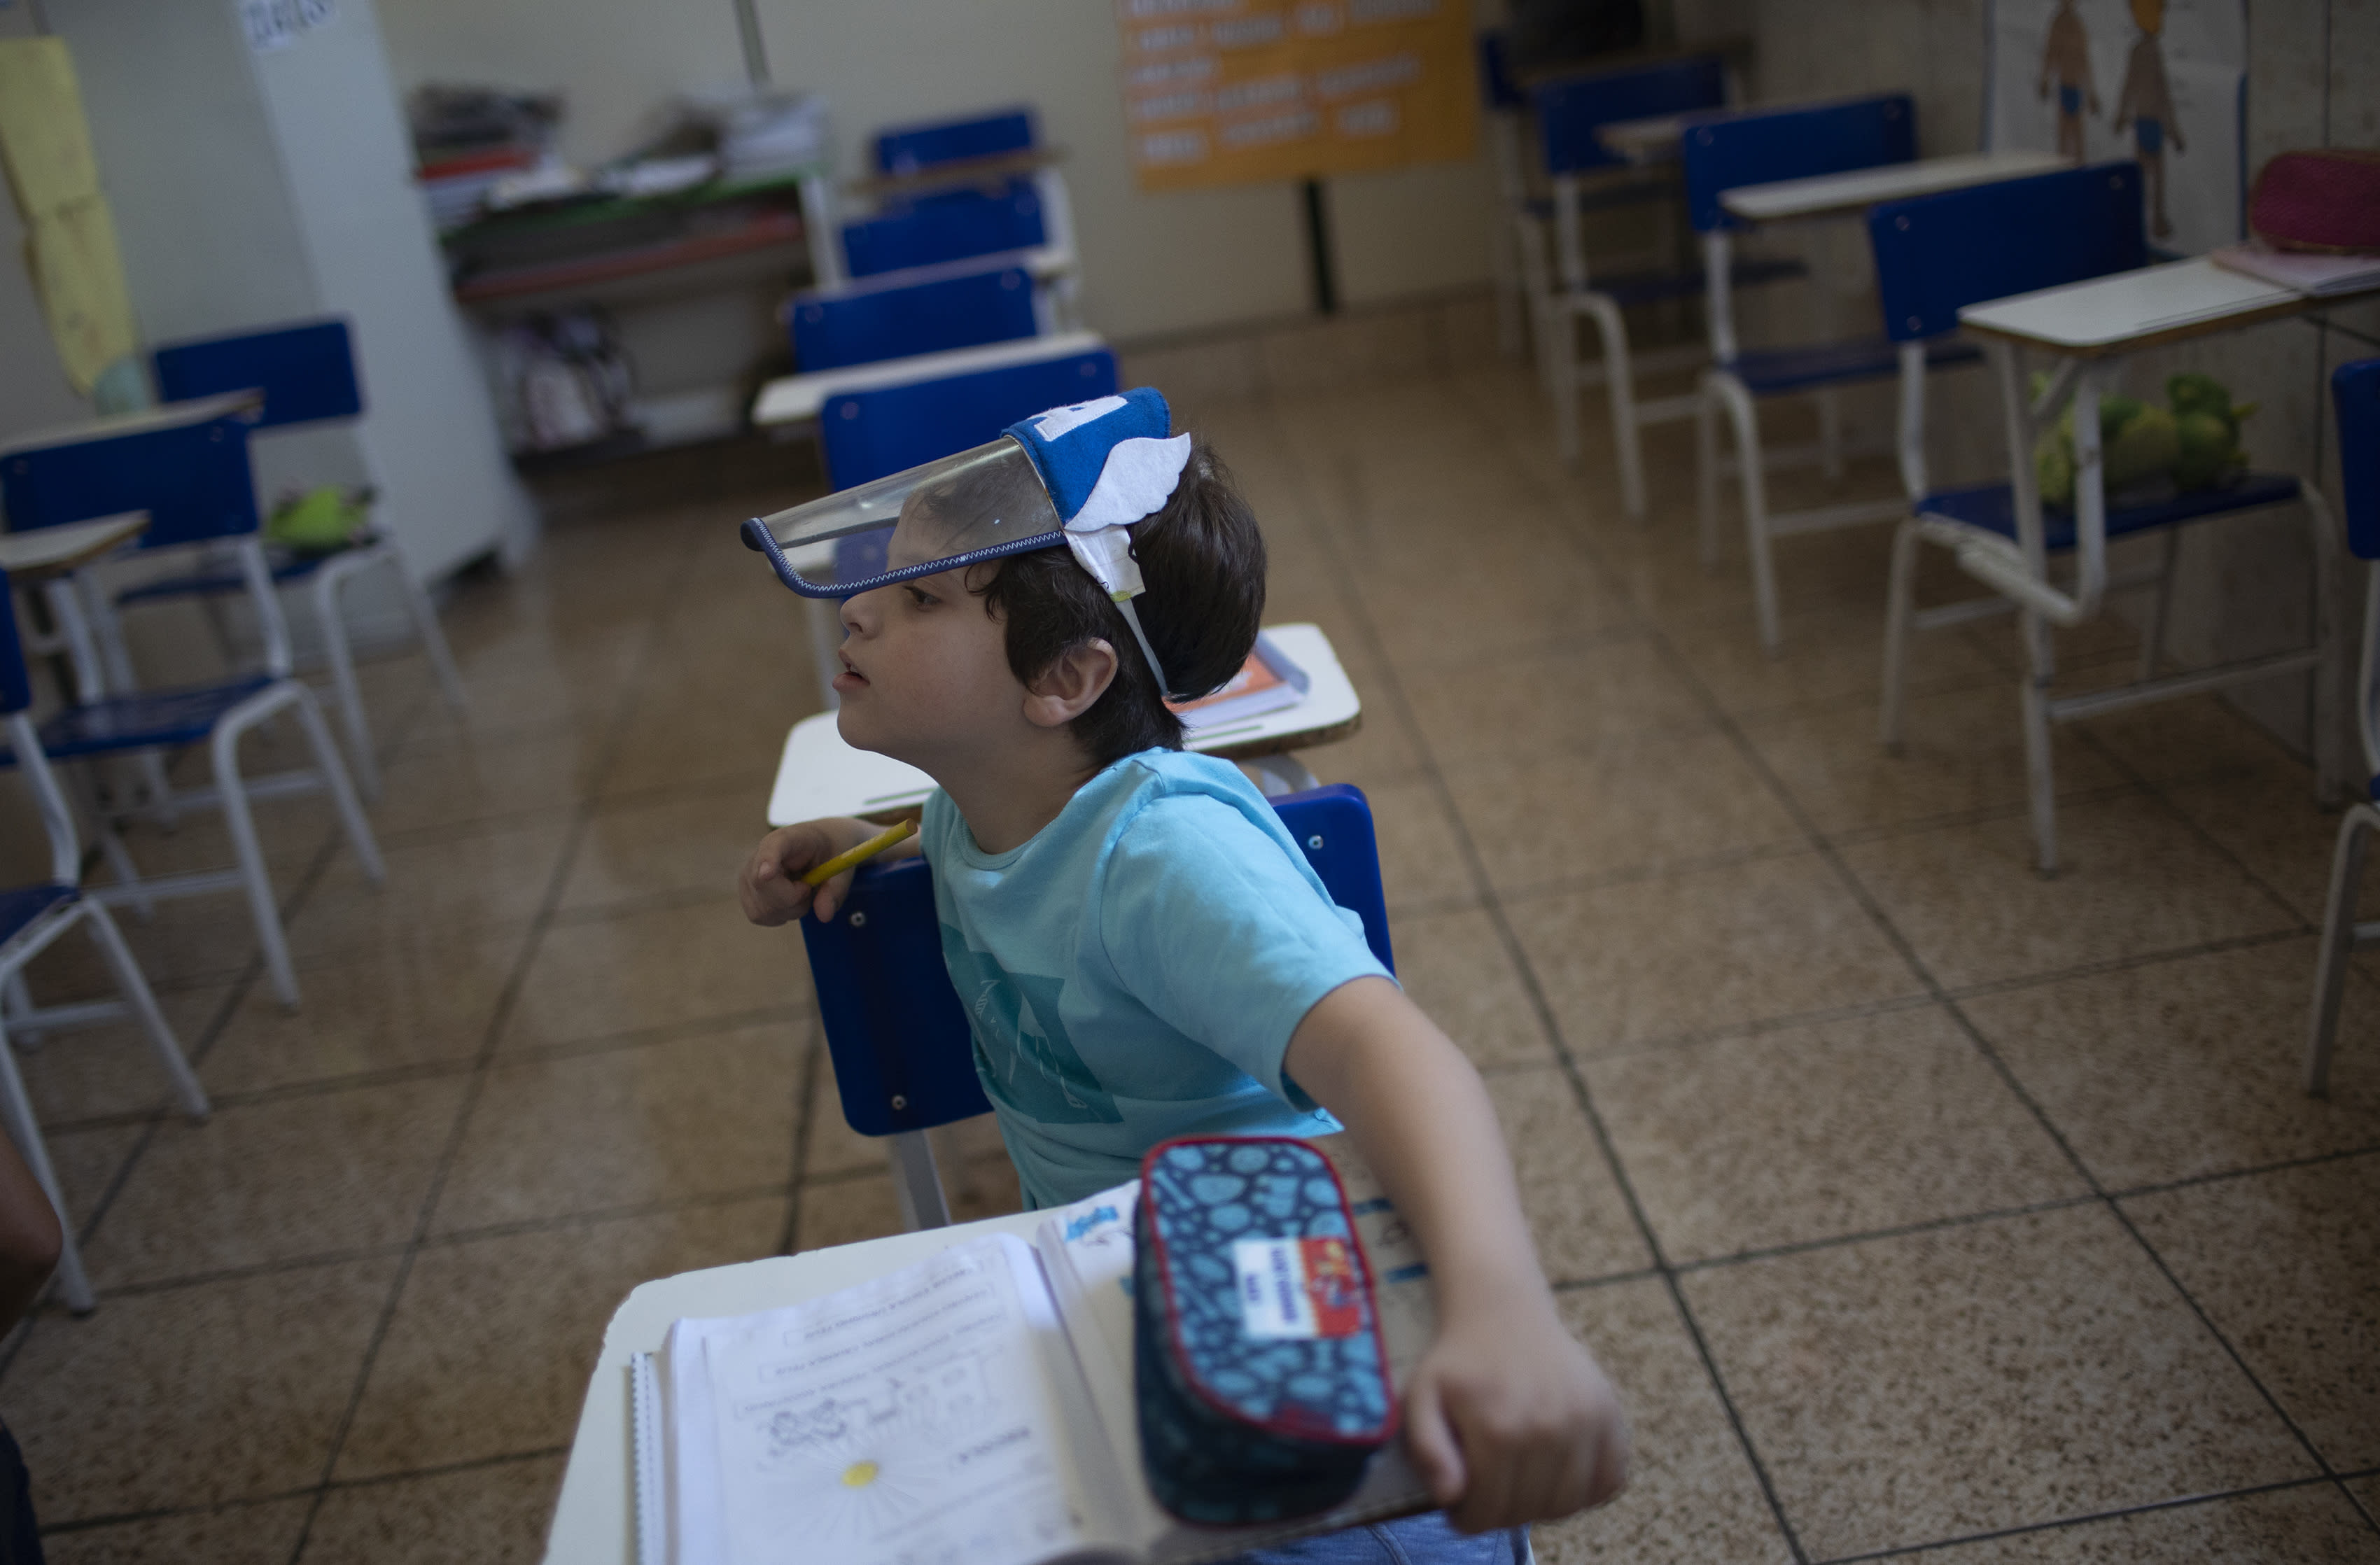 Bernardo Santo attends a class wearing a face shield, at the Pereira Agustinho daycare, nursery school and pre-school, after it reopened amid the new coronavirus pandemic in Duque de Caxias, Monday, July 6, 2020. The city of Manaus in the Amazon rainforest and Duque de Caxias in Rio de Janeiro's metropolitan region, became on Monday the first Brazilian cities to resume in-person classes at private schools since the onset of the COVID-19 pandemic, according to the nation's private school federation. (AP Photo/Silvia Izquierdo)